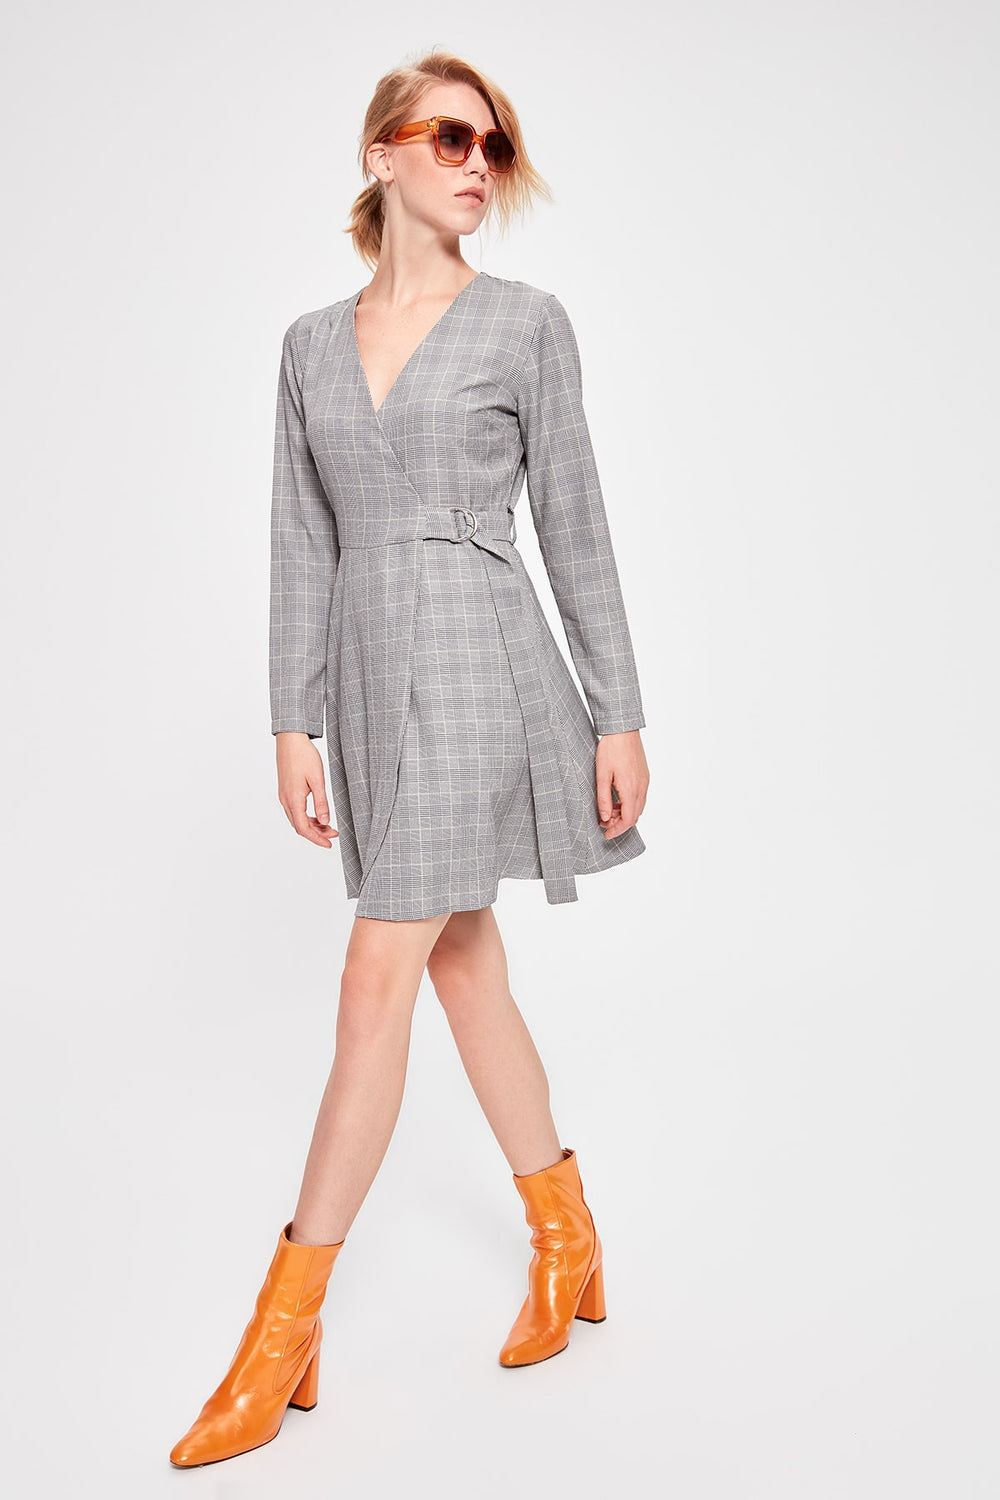 Miss Zut Miss Zut Plaid-Dress Miss Zut &CO